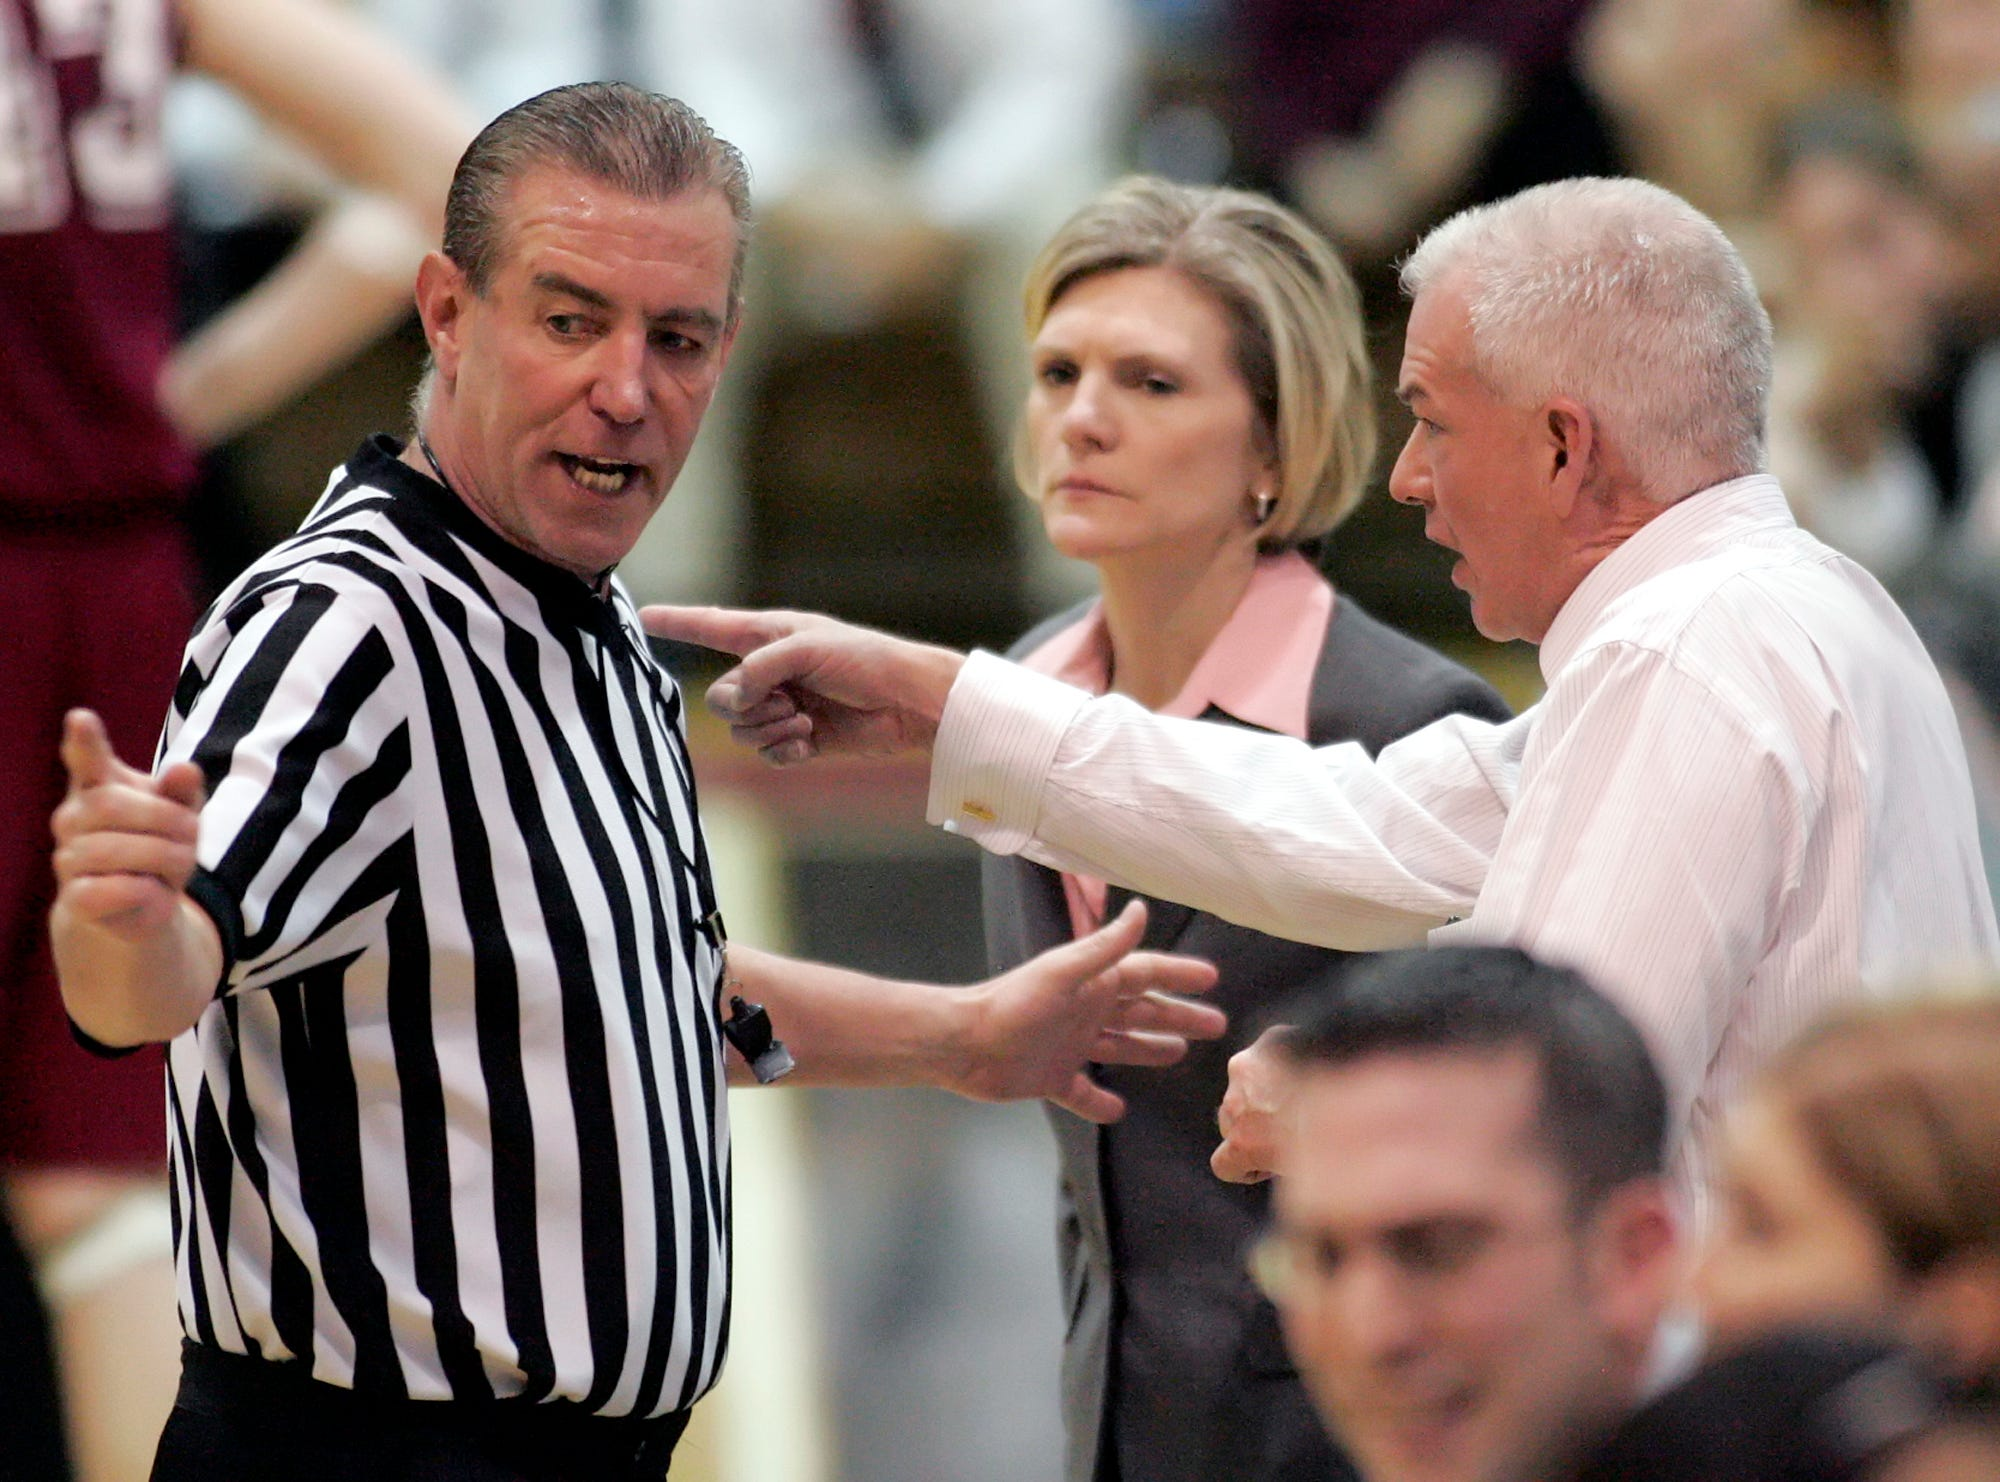 Longtime referee Dennis DeMayo set to call 1 final game